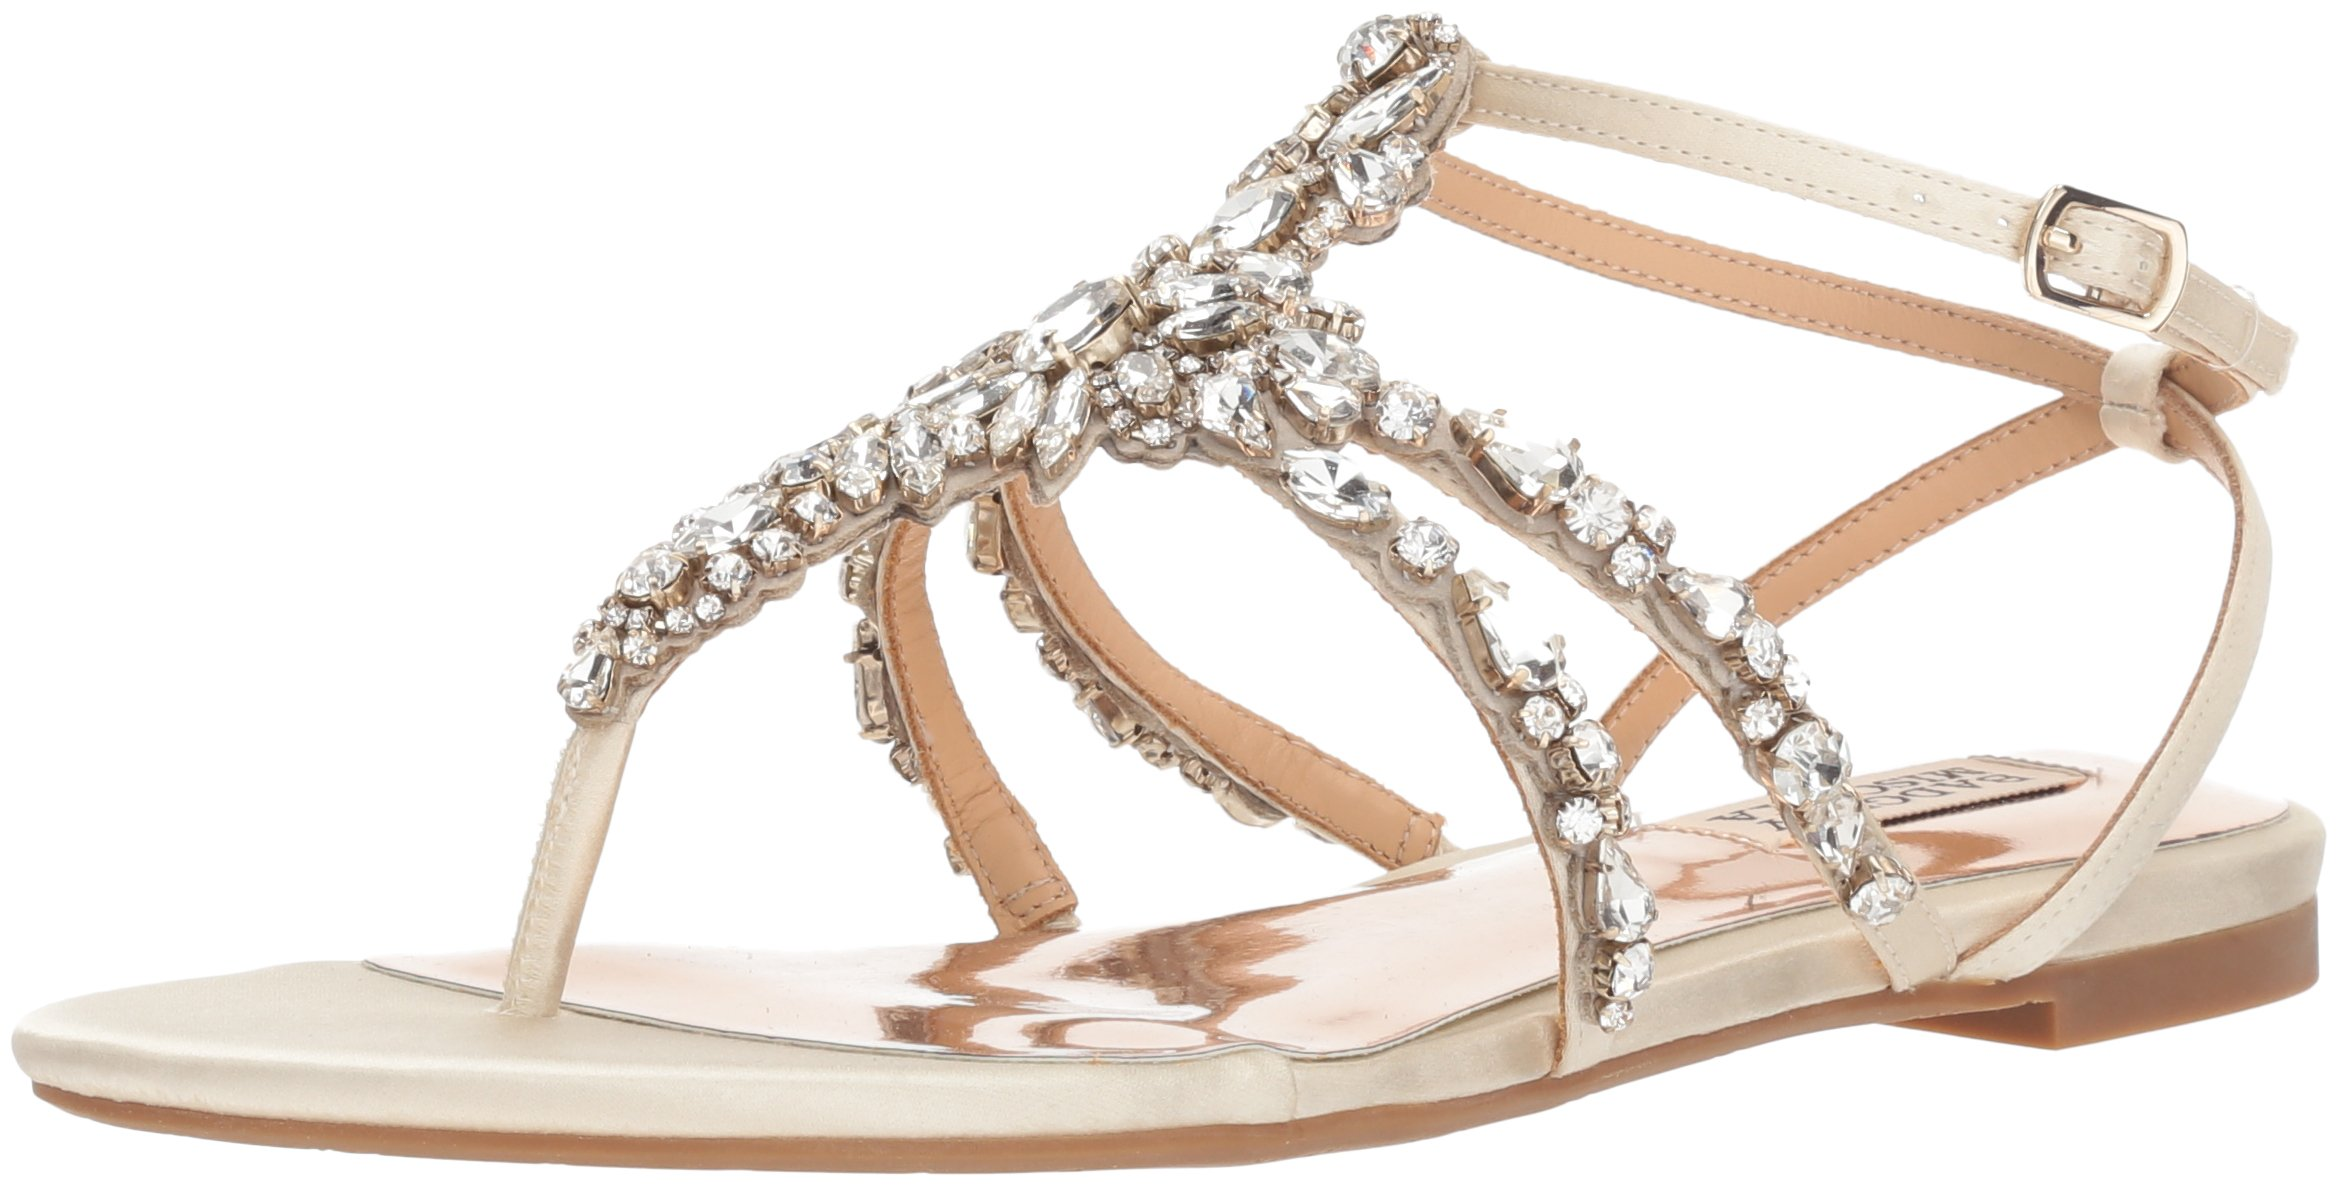 Badgley Mischka Women's Hampden Flat Sandal, Ivory, 9.5 M US by Badgley Mischka (Image #1)